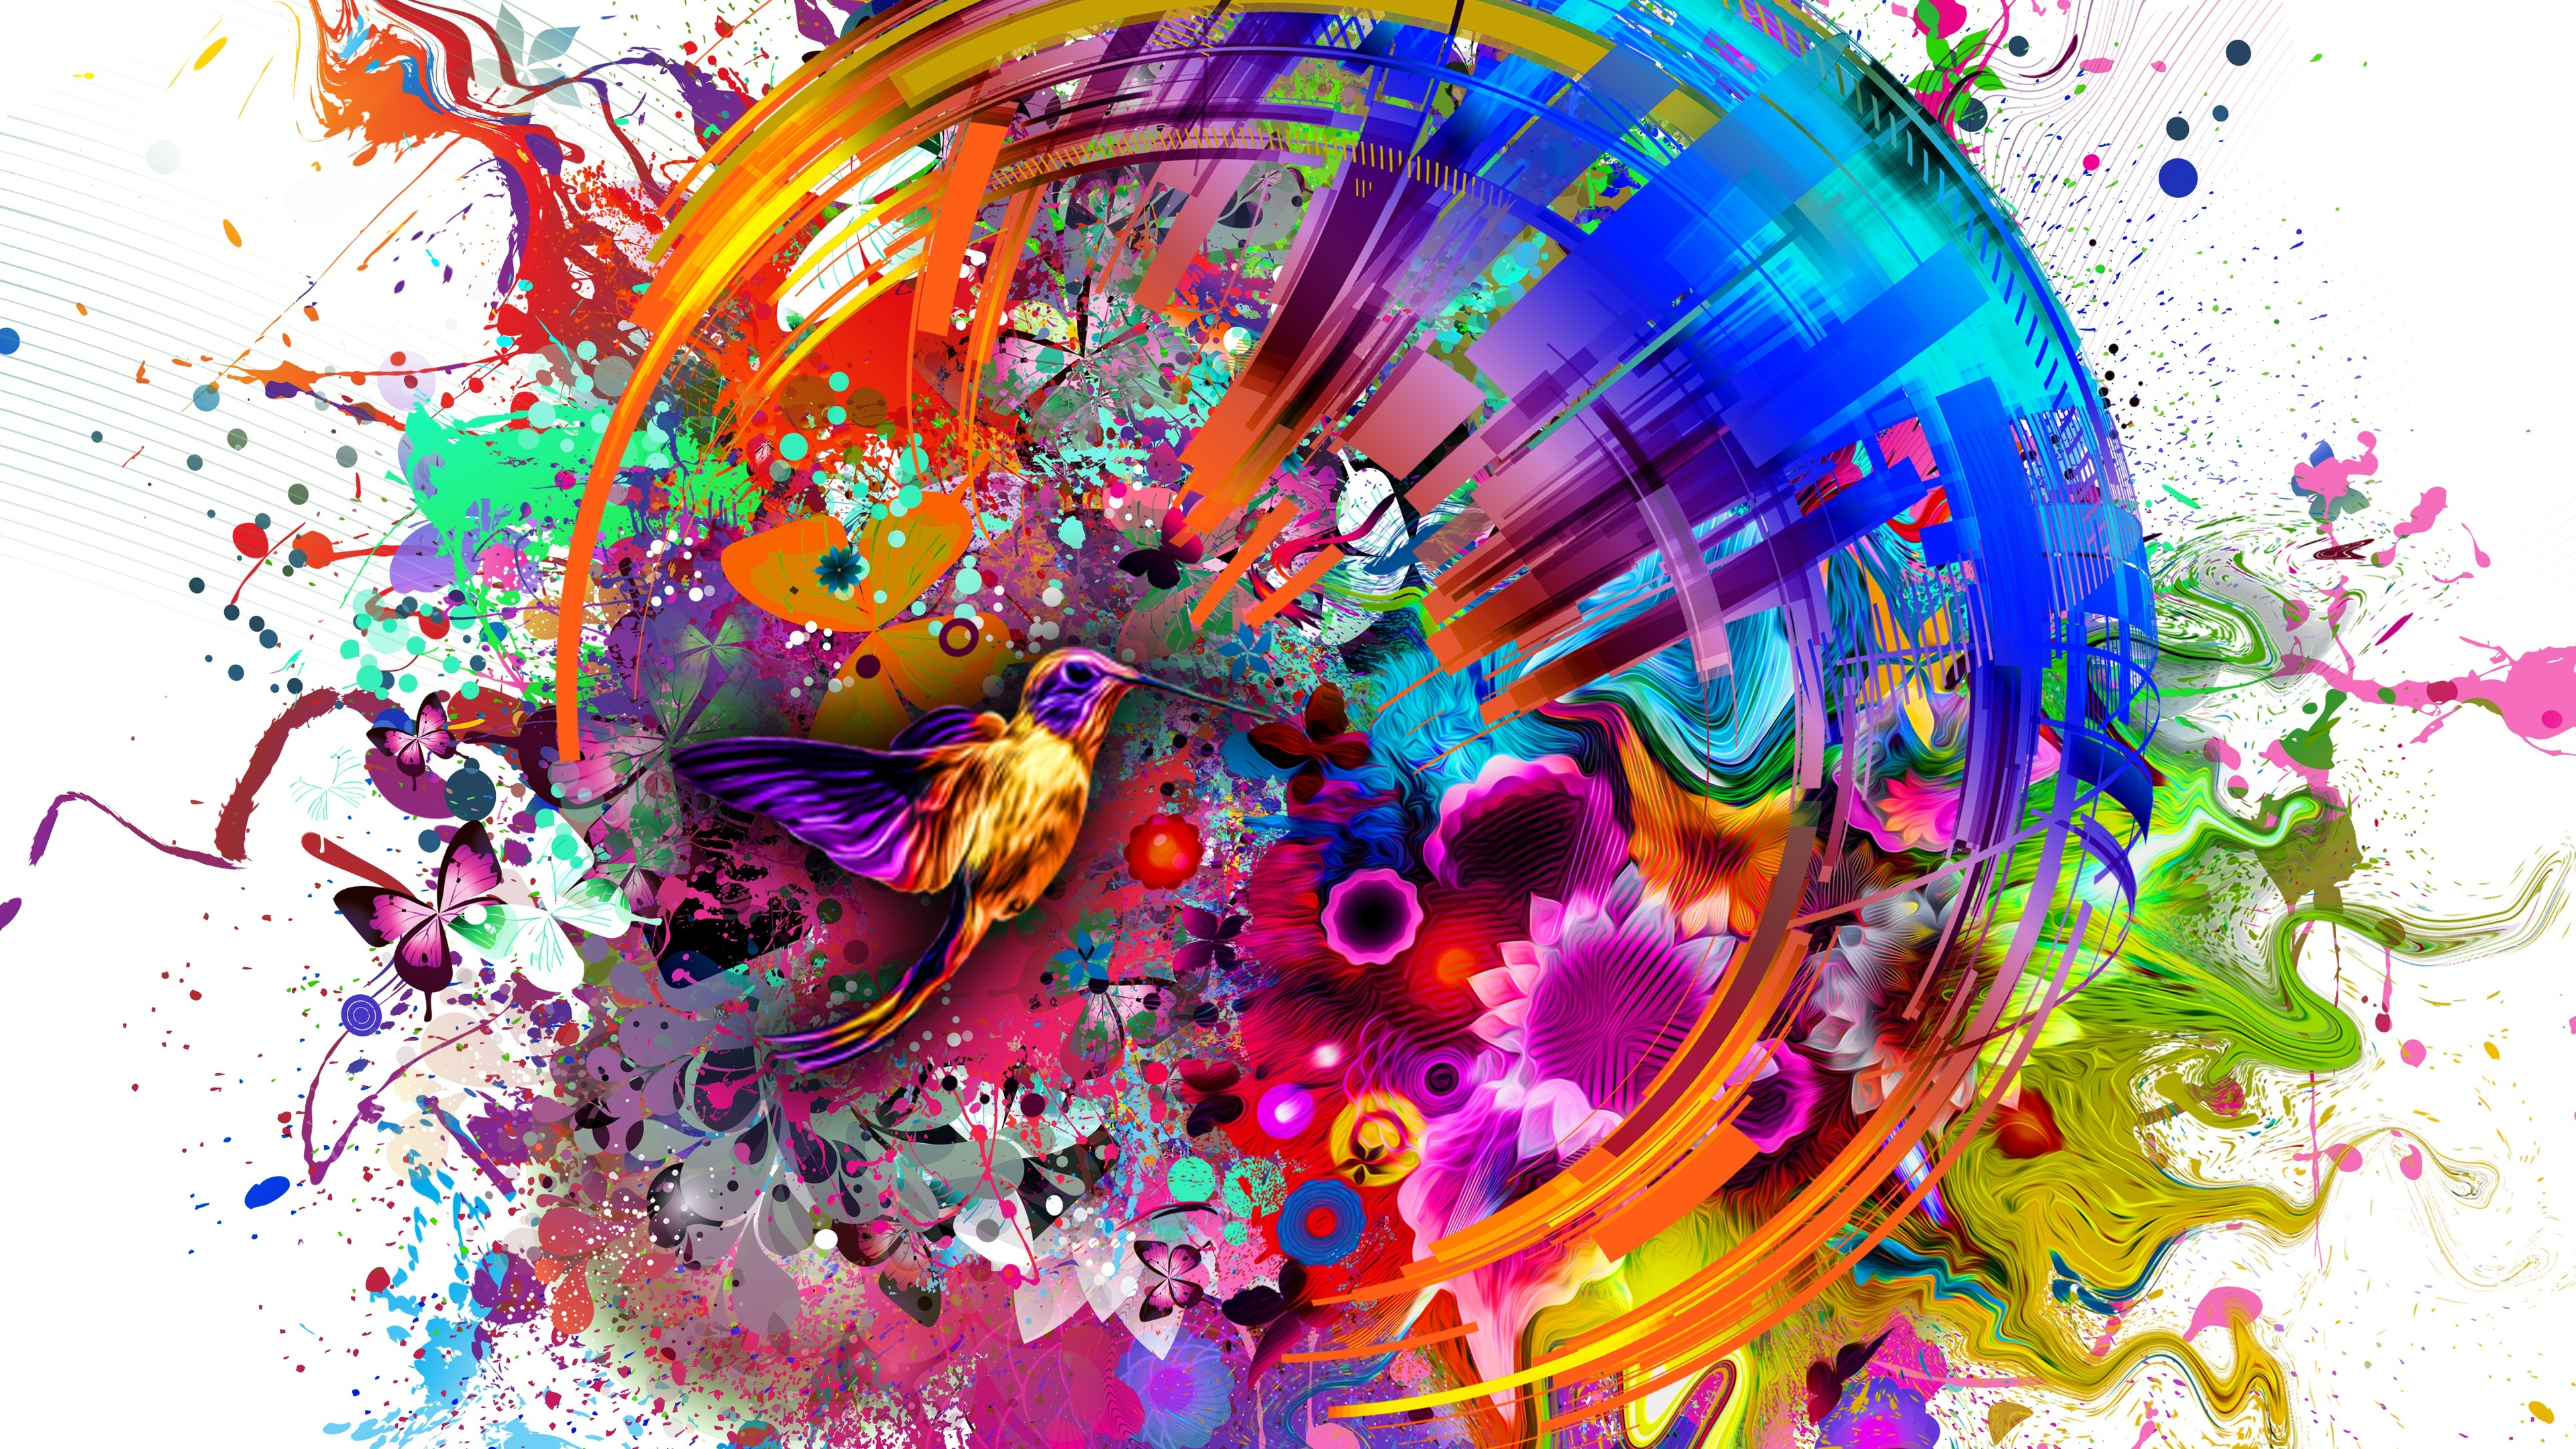 abstract colors flashy bird 4k 1539370886 - Abstract Colors Flashy Bird 4k - hd-wallpapers, birds wallpapers, abstract wallpapers, 4k-wallpapers